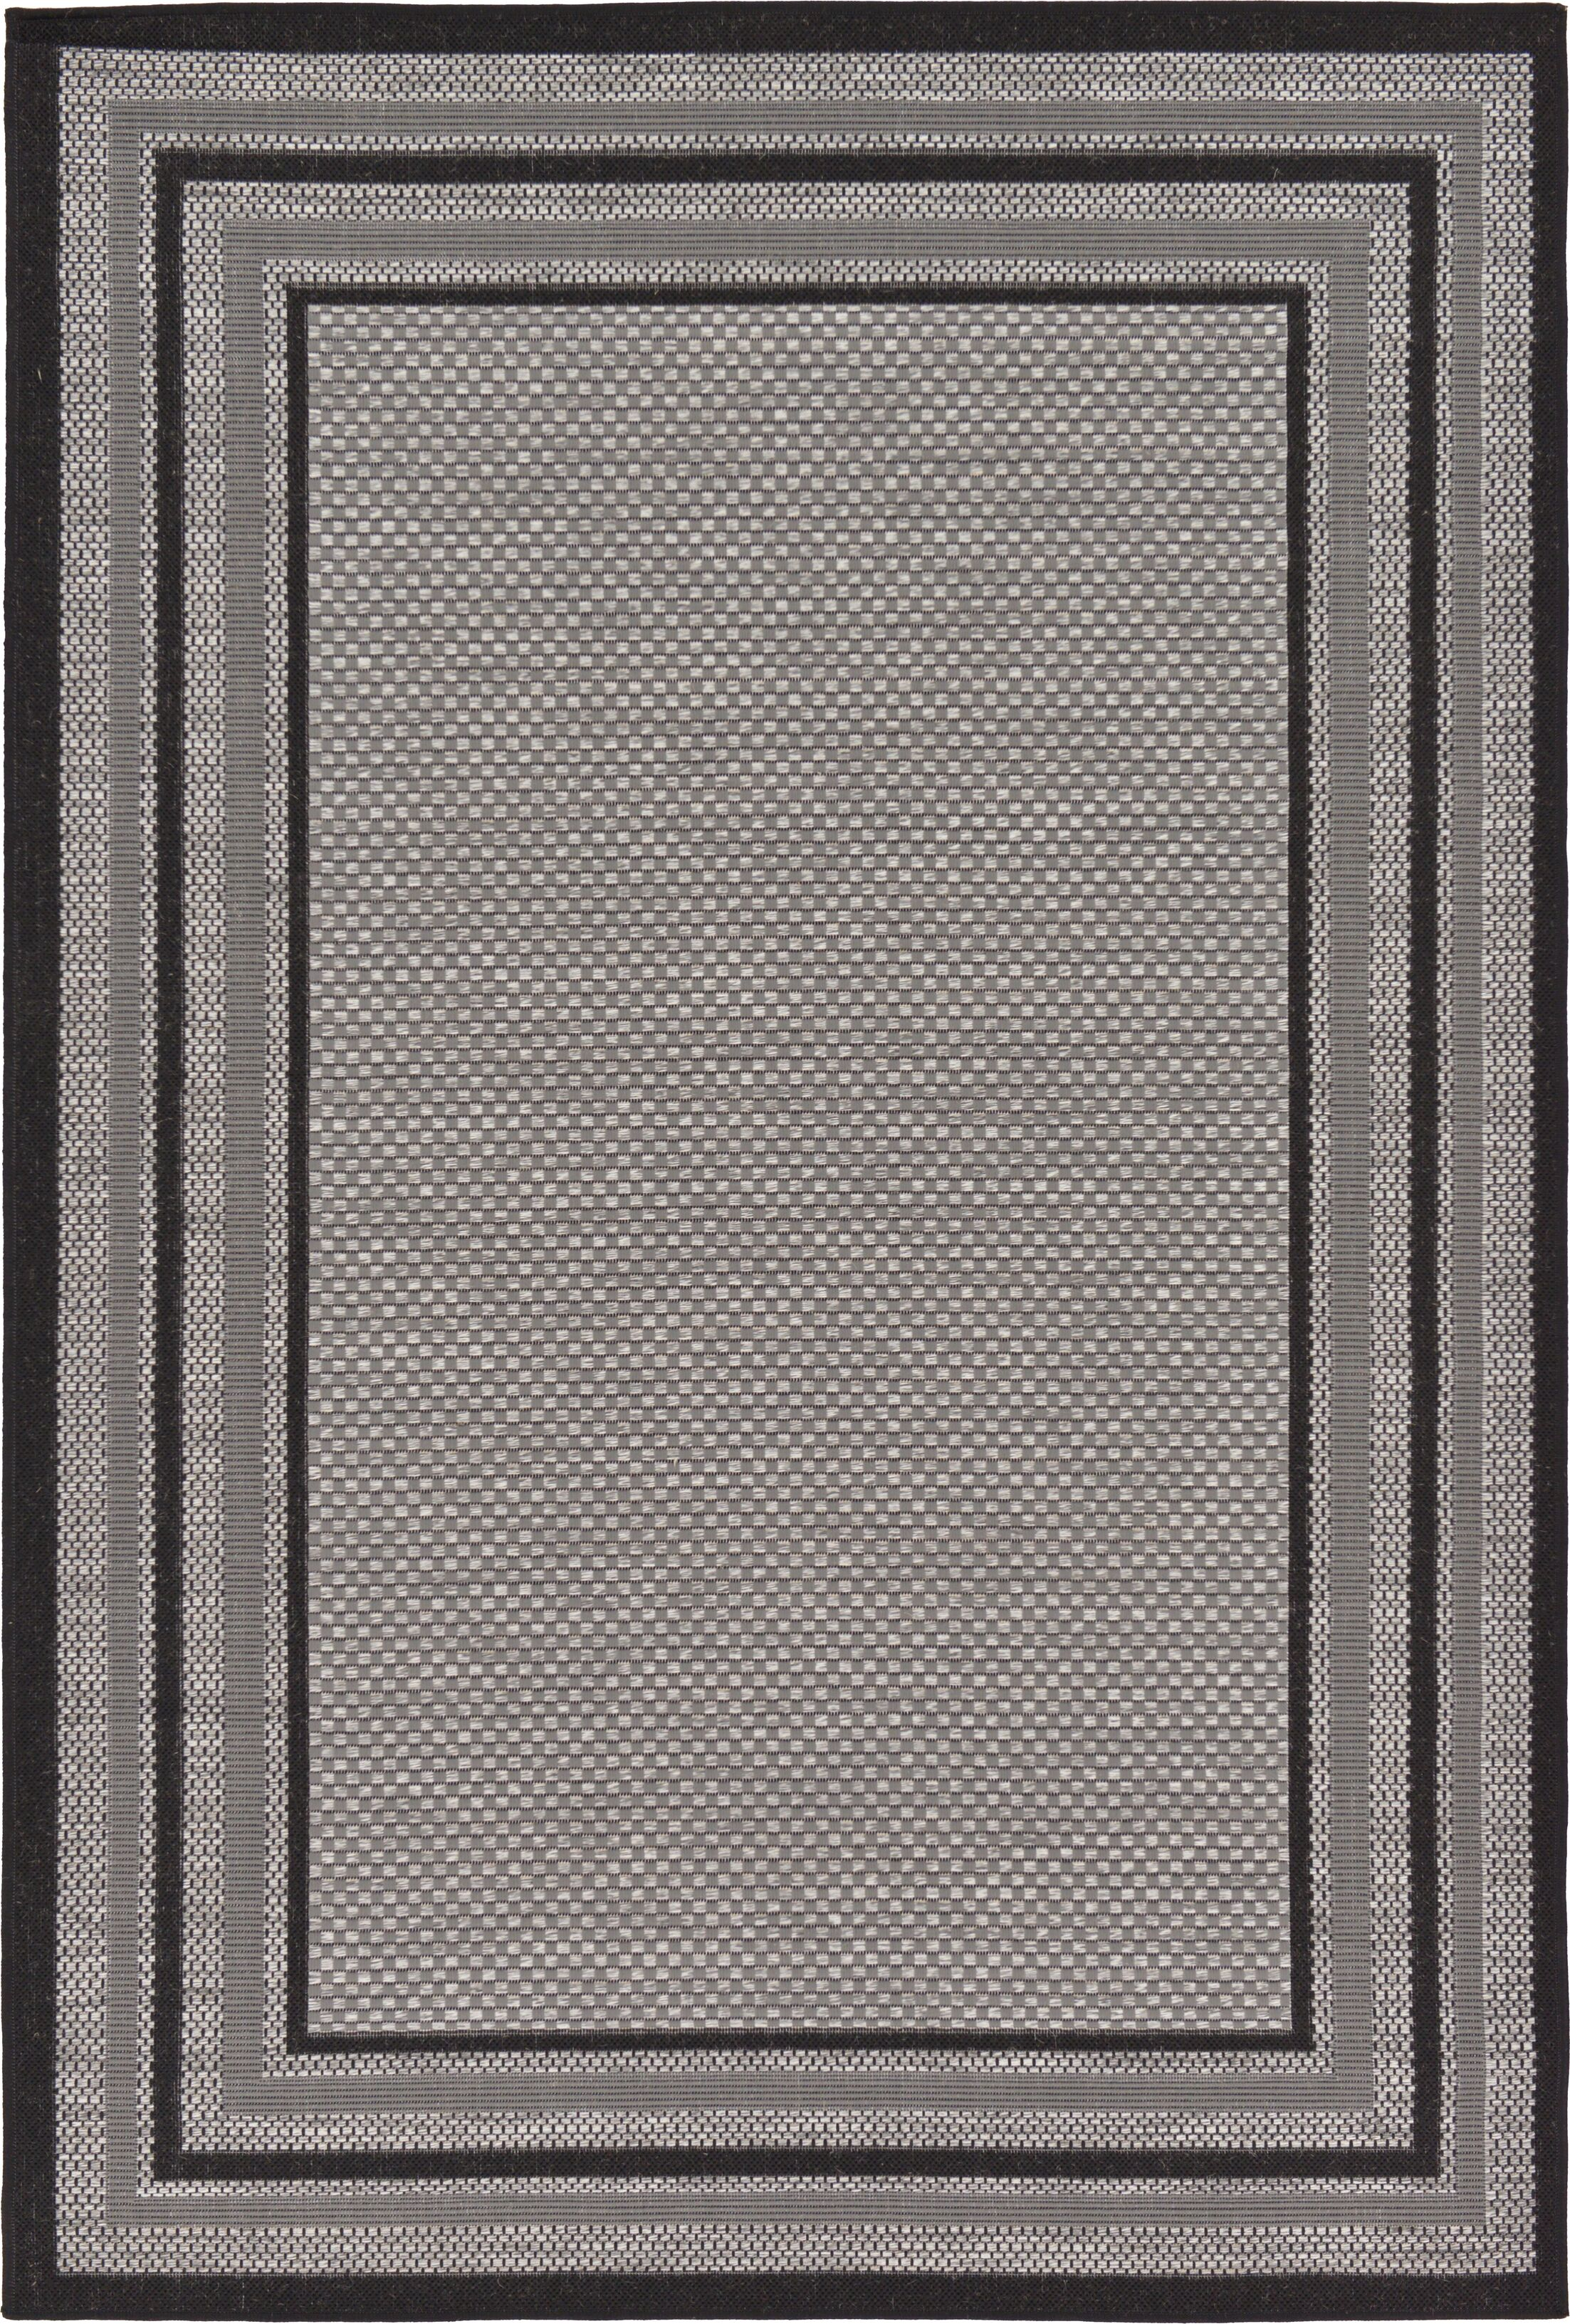 Sneller Gray Outdoor Area Rug Rug Size: Rectangle 5' x 8'